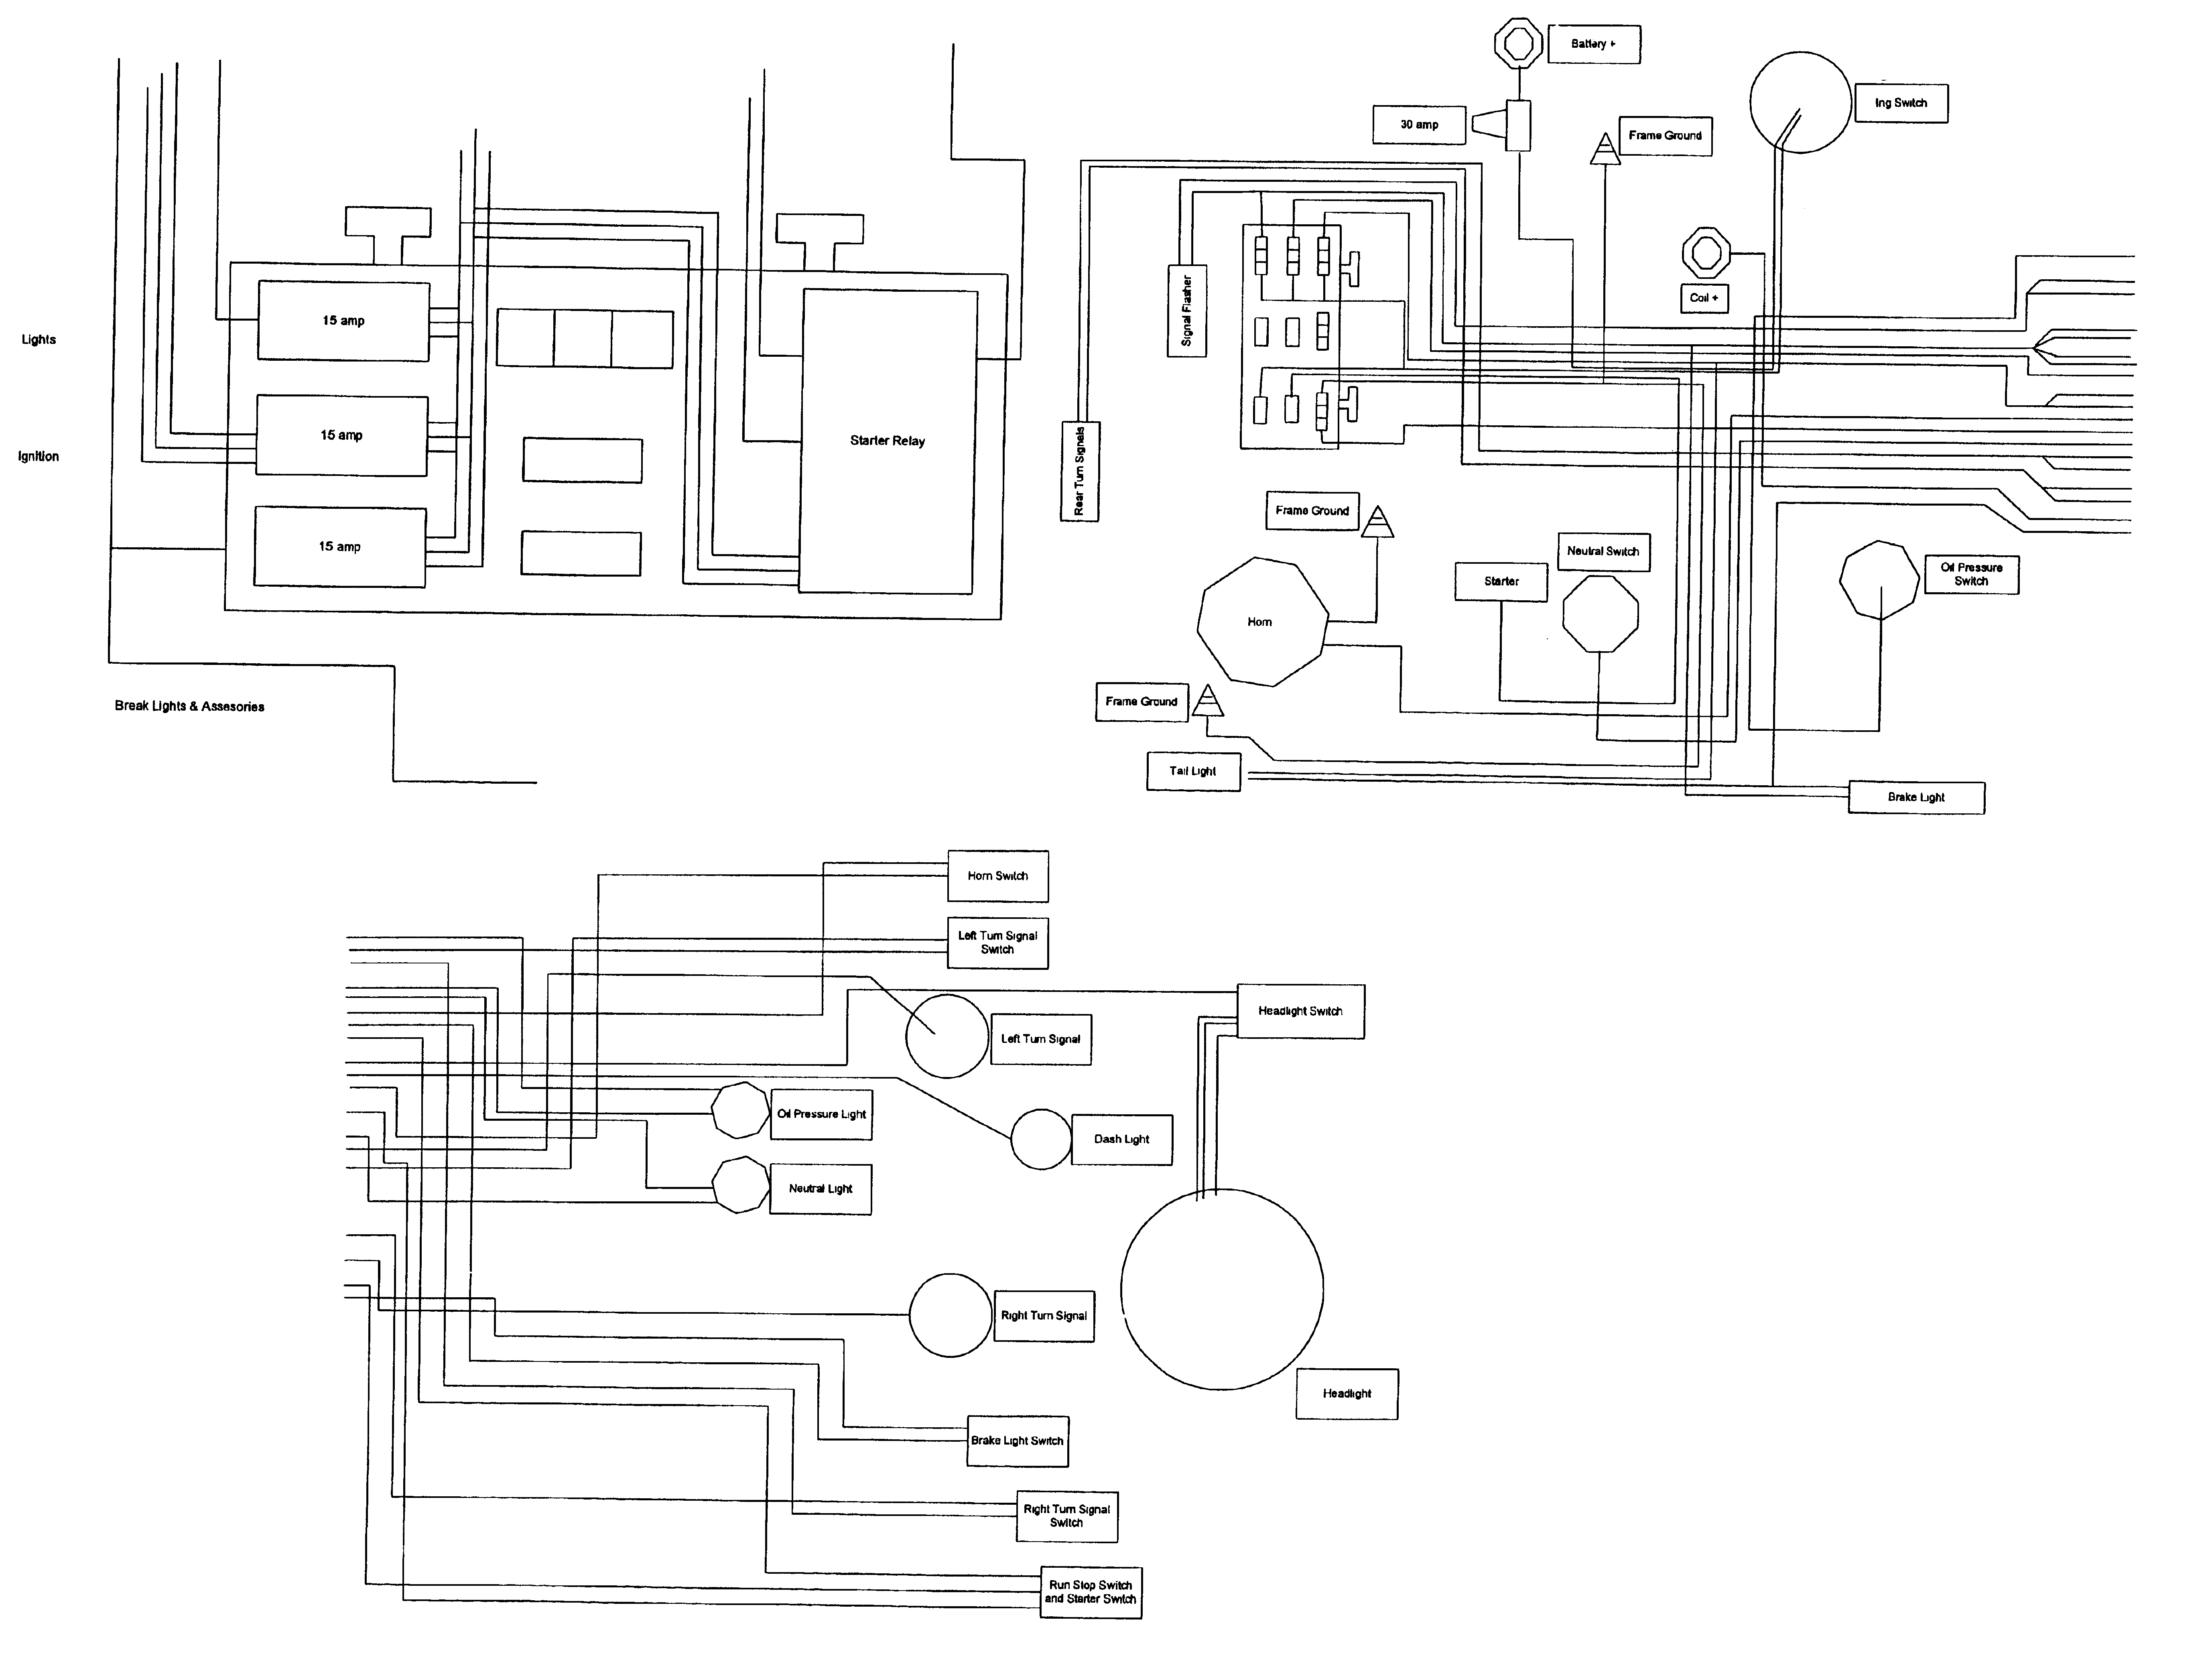 US06720672 20040413 D00000 patent us6720672 motorcycle wiring harness google patents Wiring Harness Diagram at virtualis.co